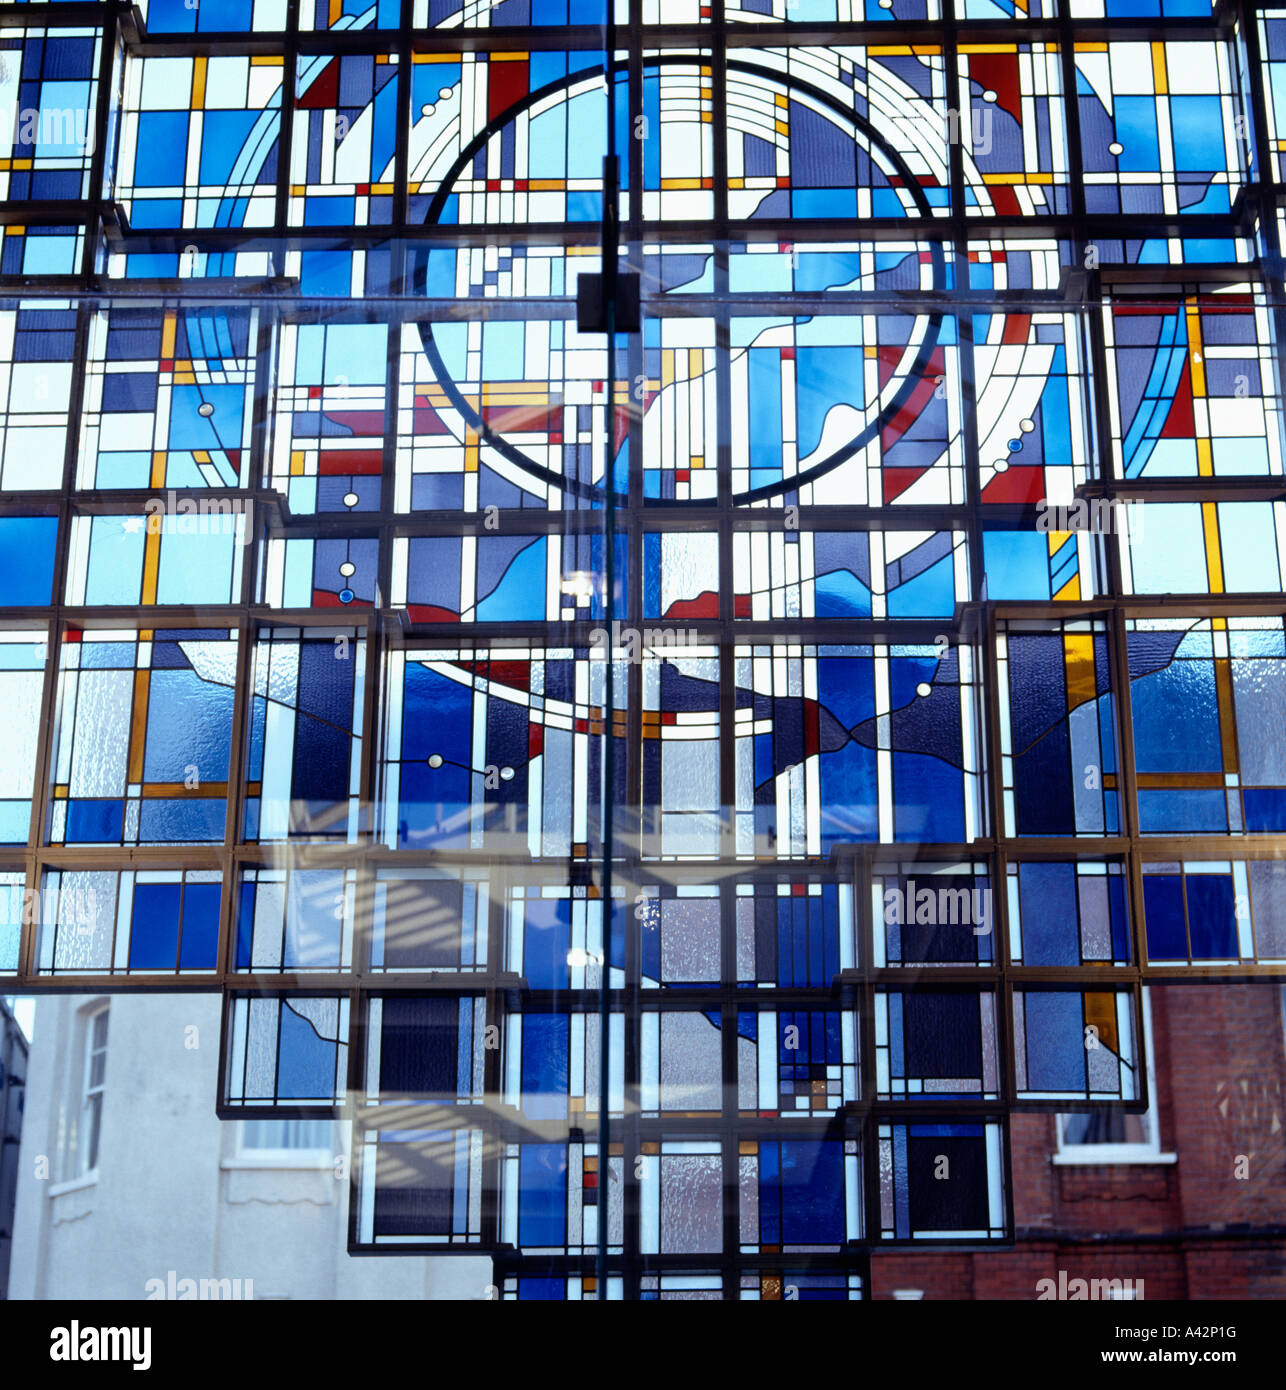 Image of: Close Up Of Modern Blue Stained Glass Window In The Putney Exchange Stock Photo Alamy